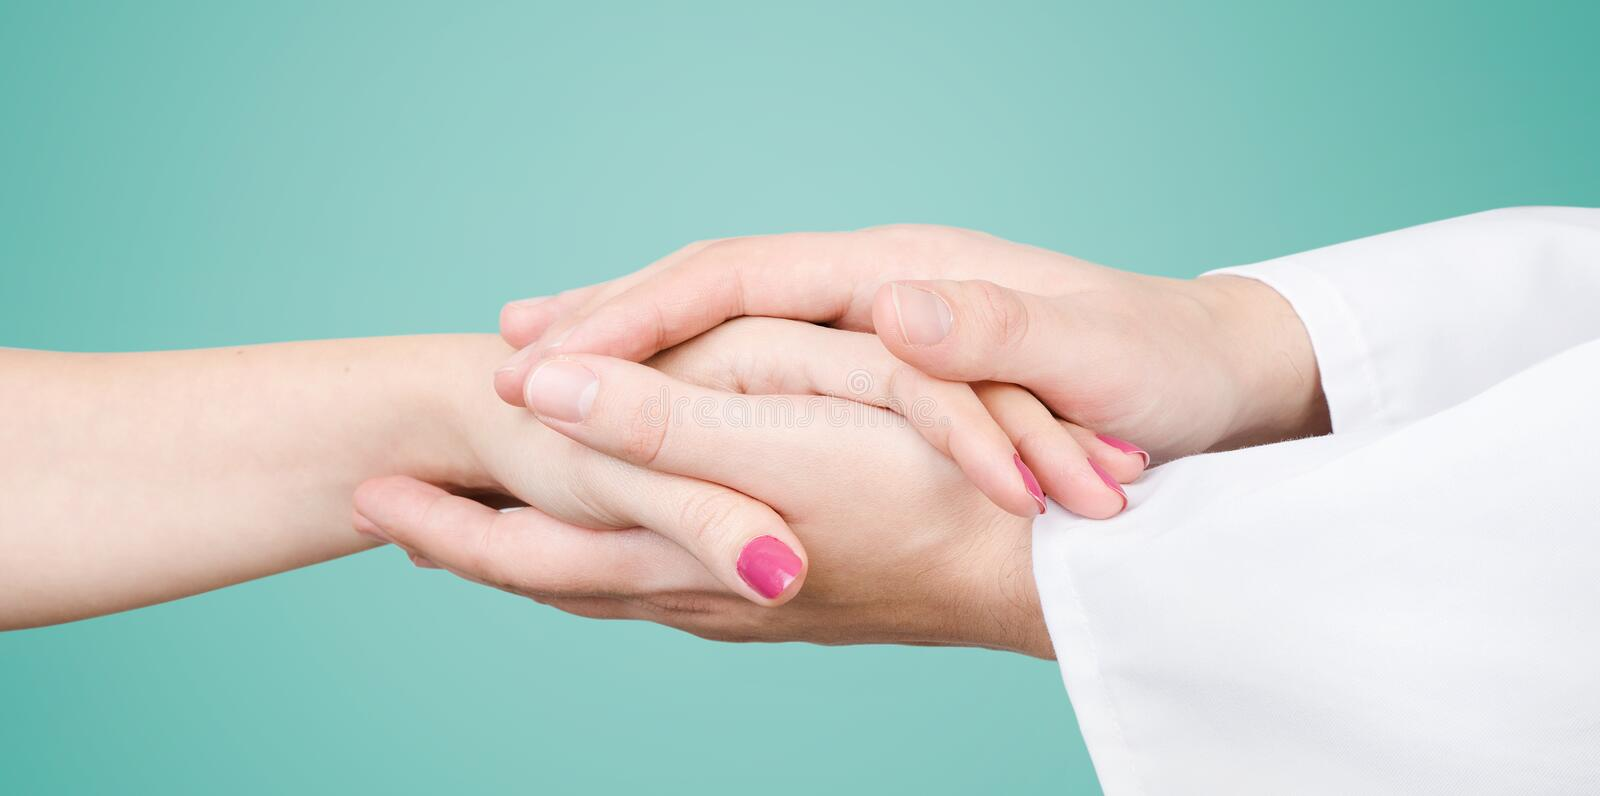 Doctor holding patient hand close up royalty free stock image